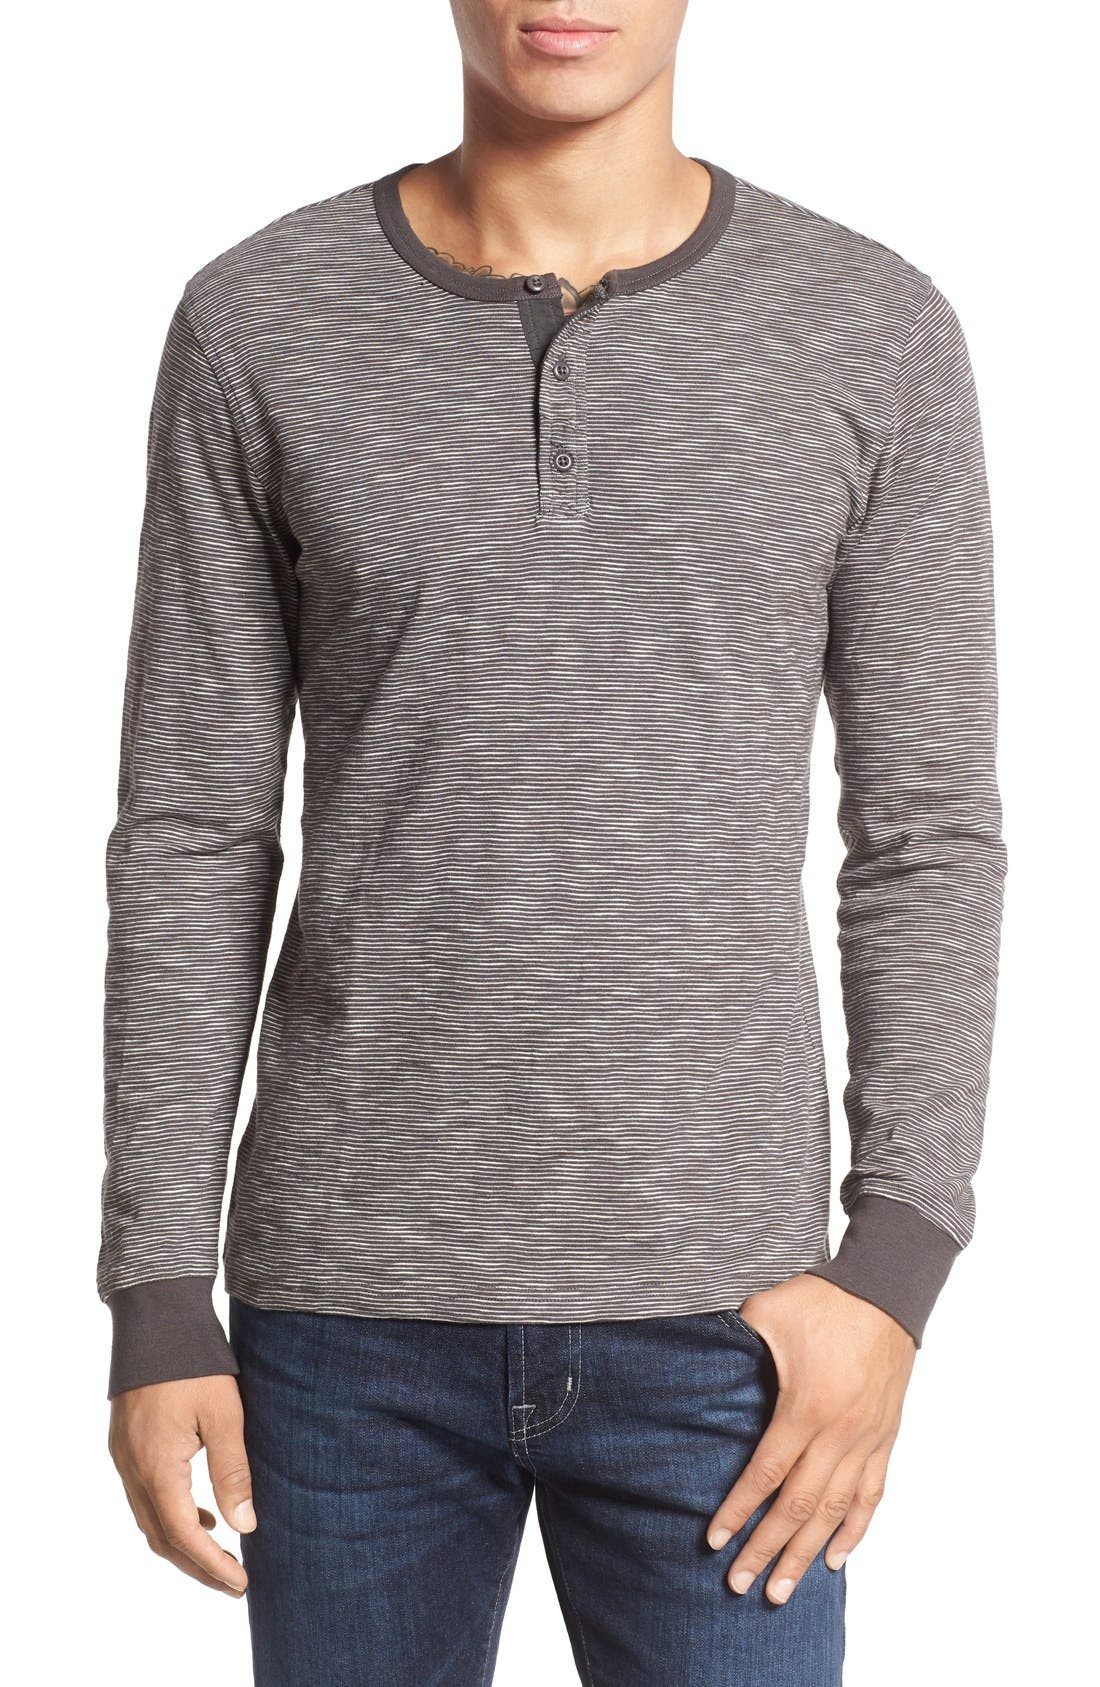 Alternate Image 1 Selected - 1901 Thin Stripe Henley